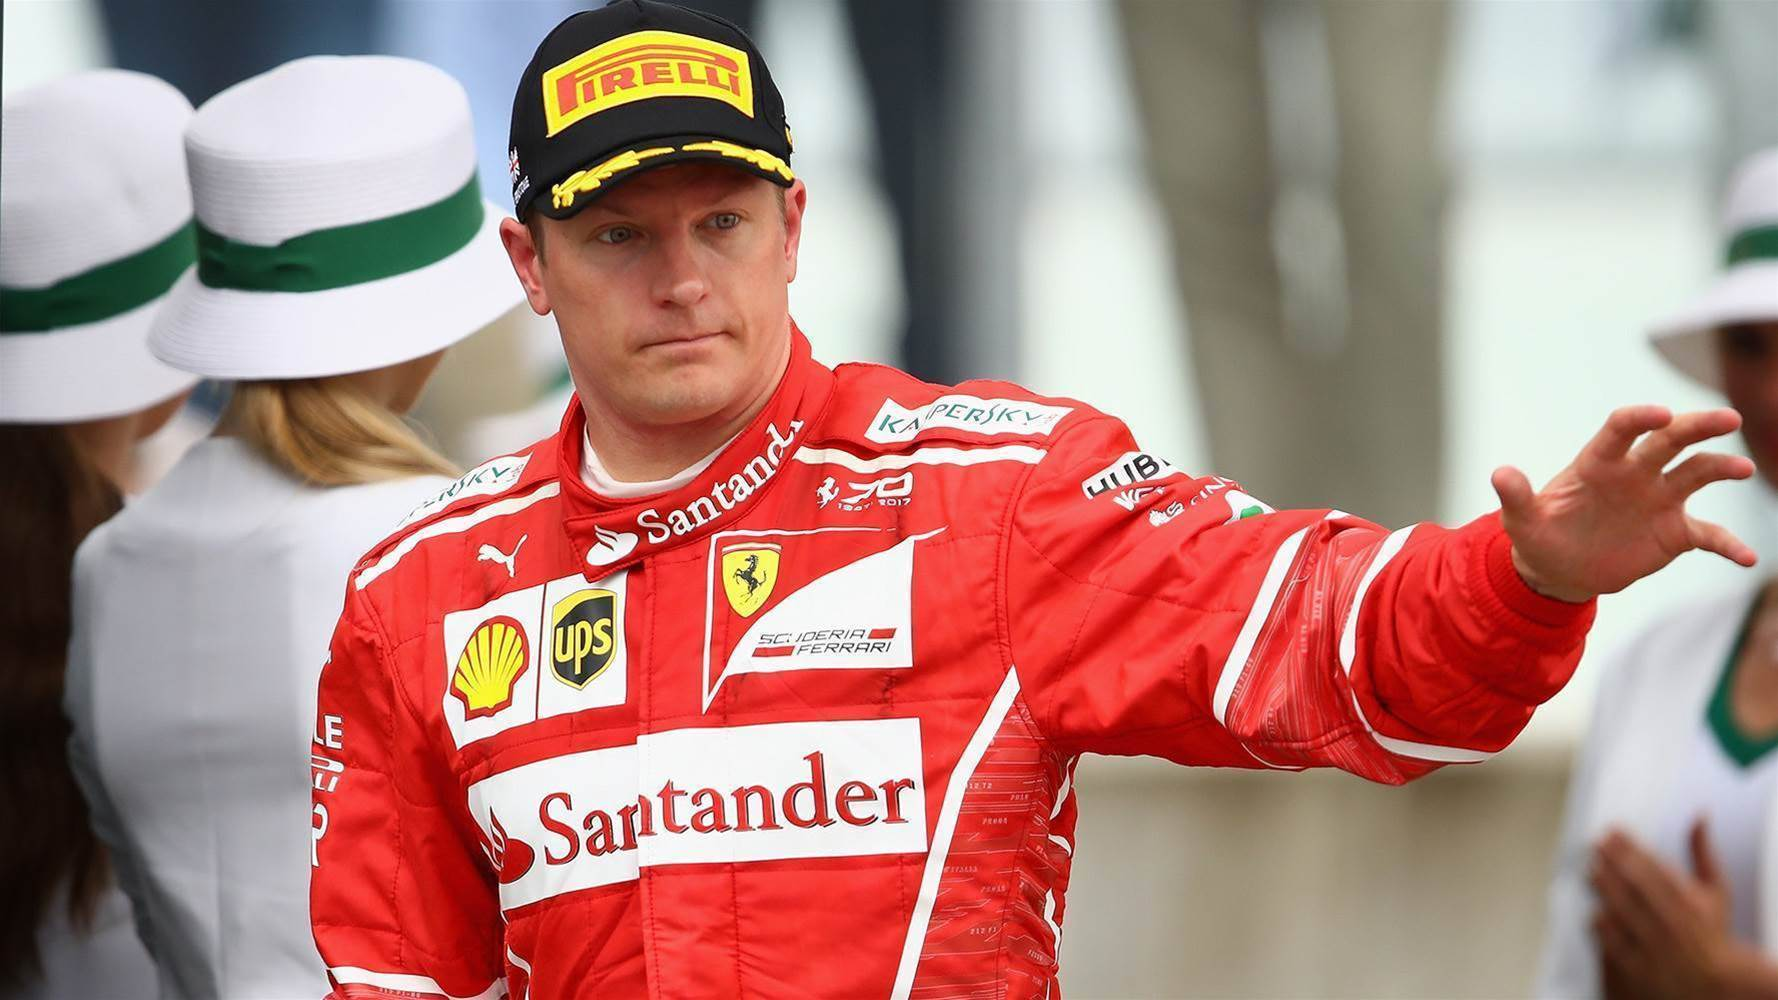 VIDEO: Kimi Raikkonen's hilarious F1 radio messages